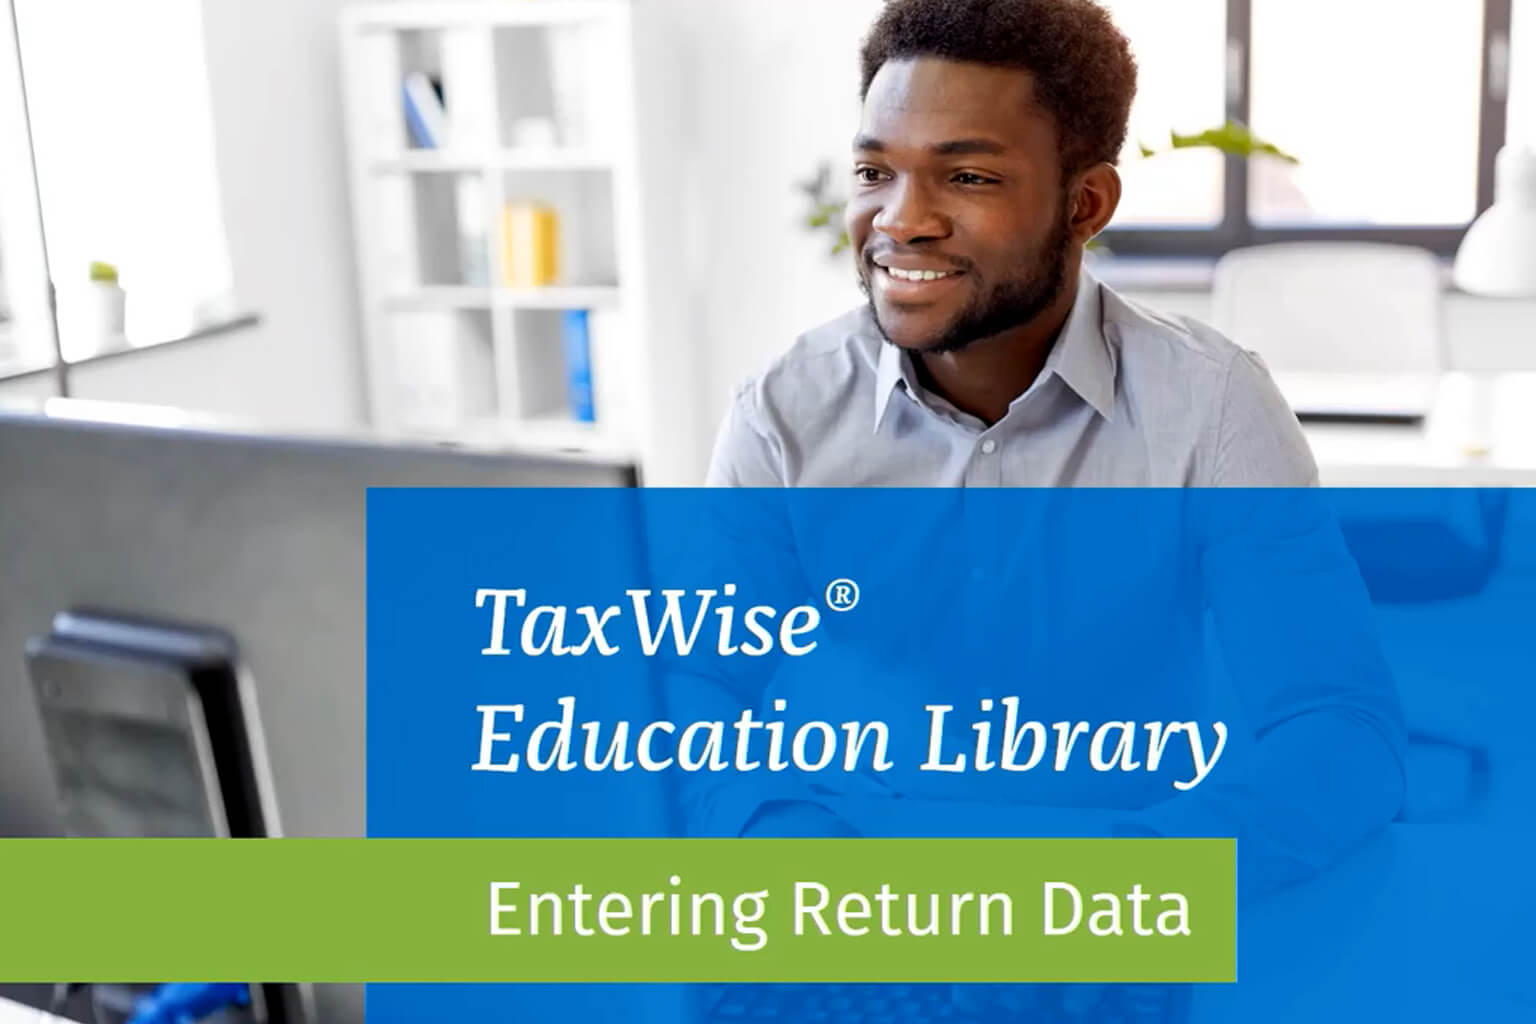 card-asset-video-product-taxwise-education-library-1536x1024